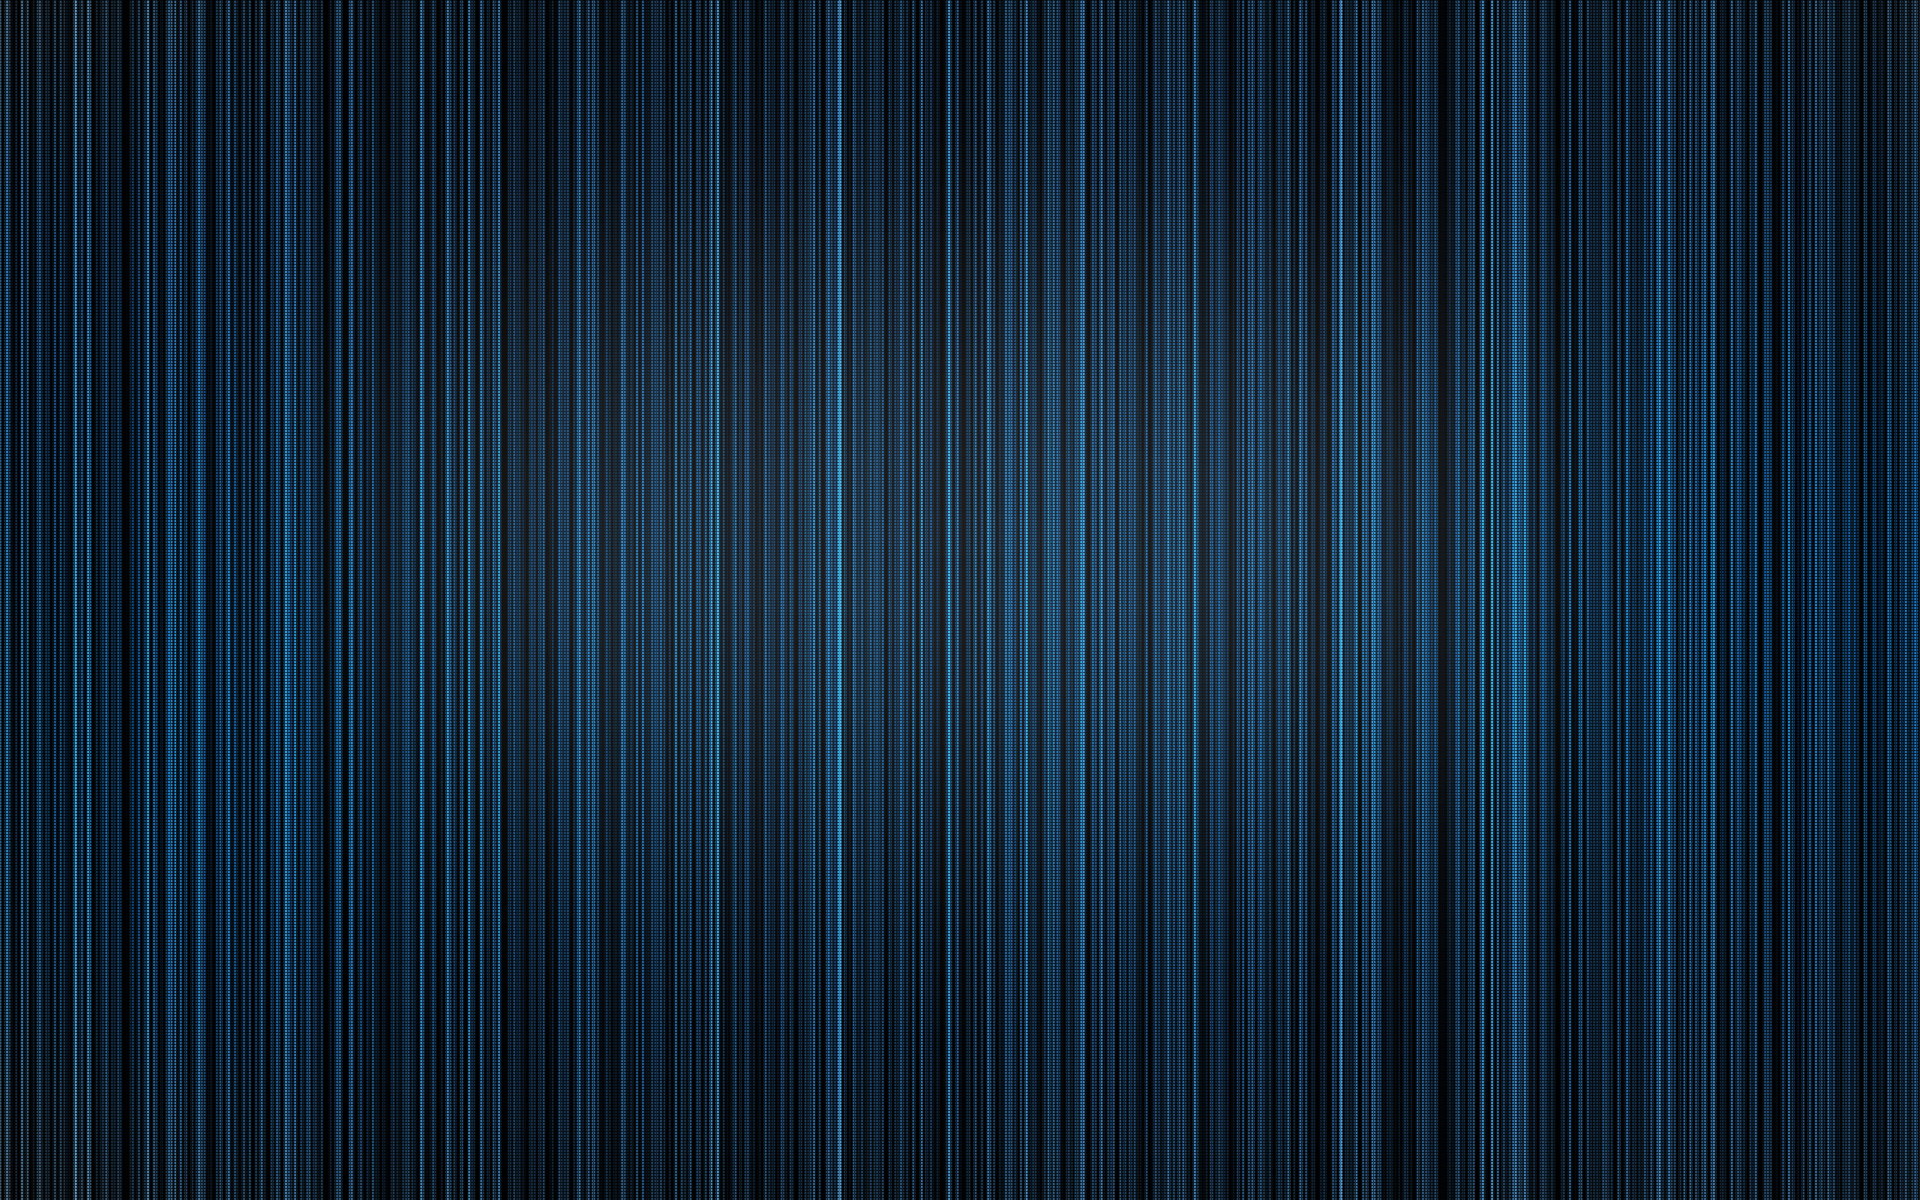 Line Texture Background : Lines texture backgrounds background for